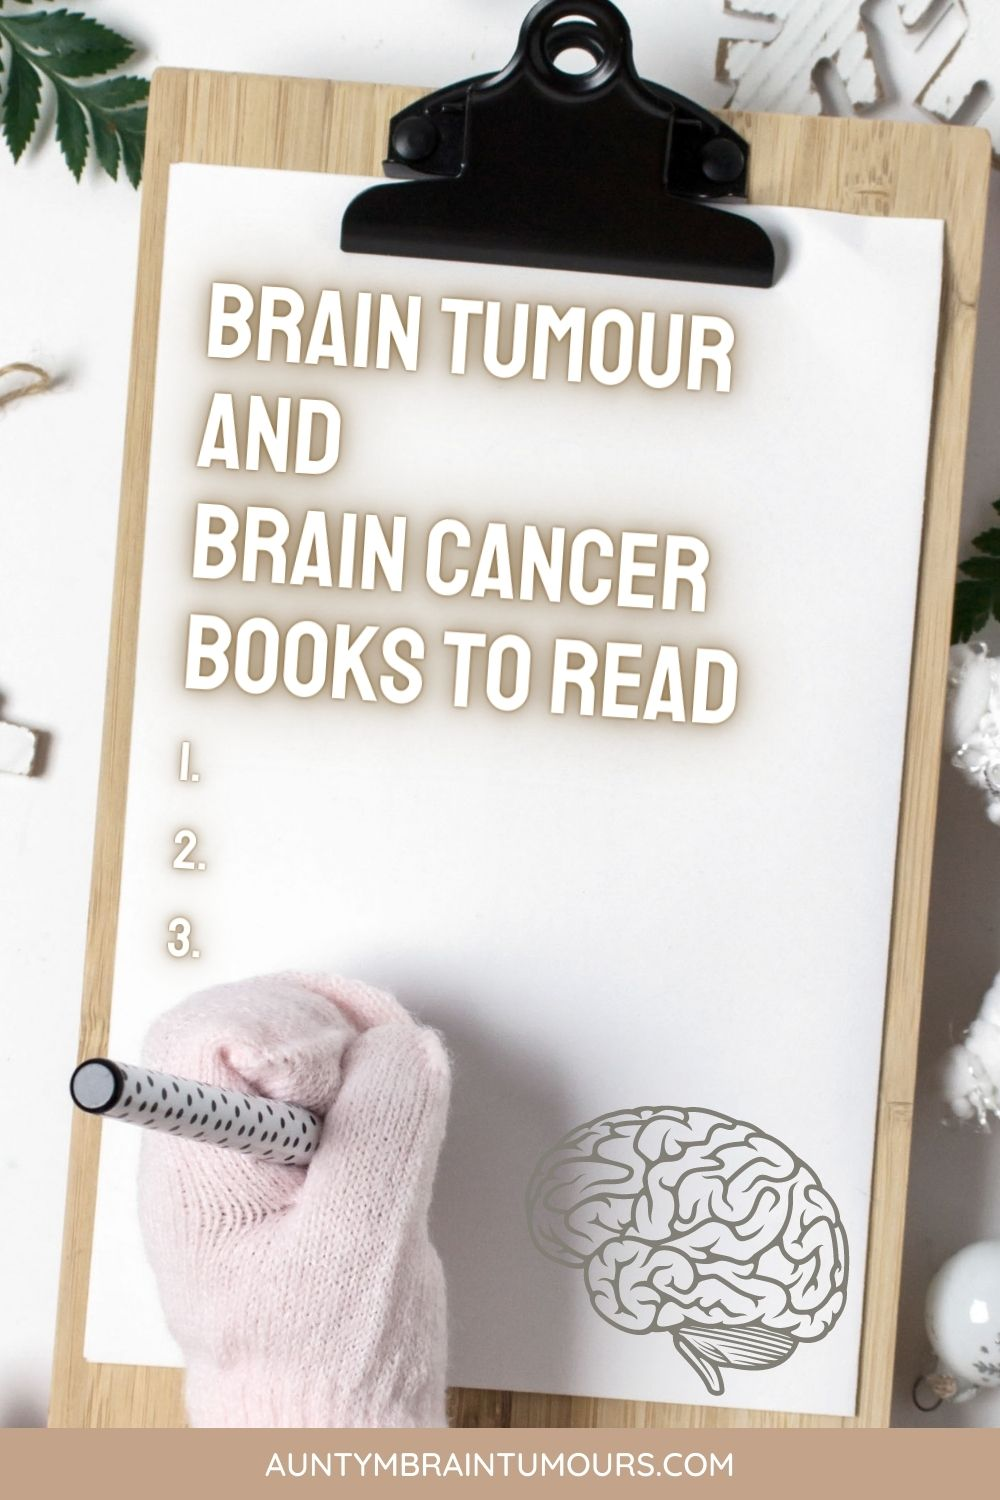 11 Most Inspiring Brain Tumour and Brain Cancer Books